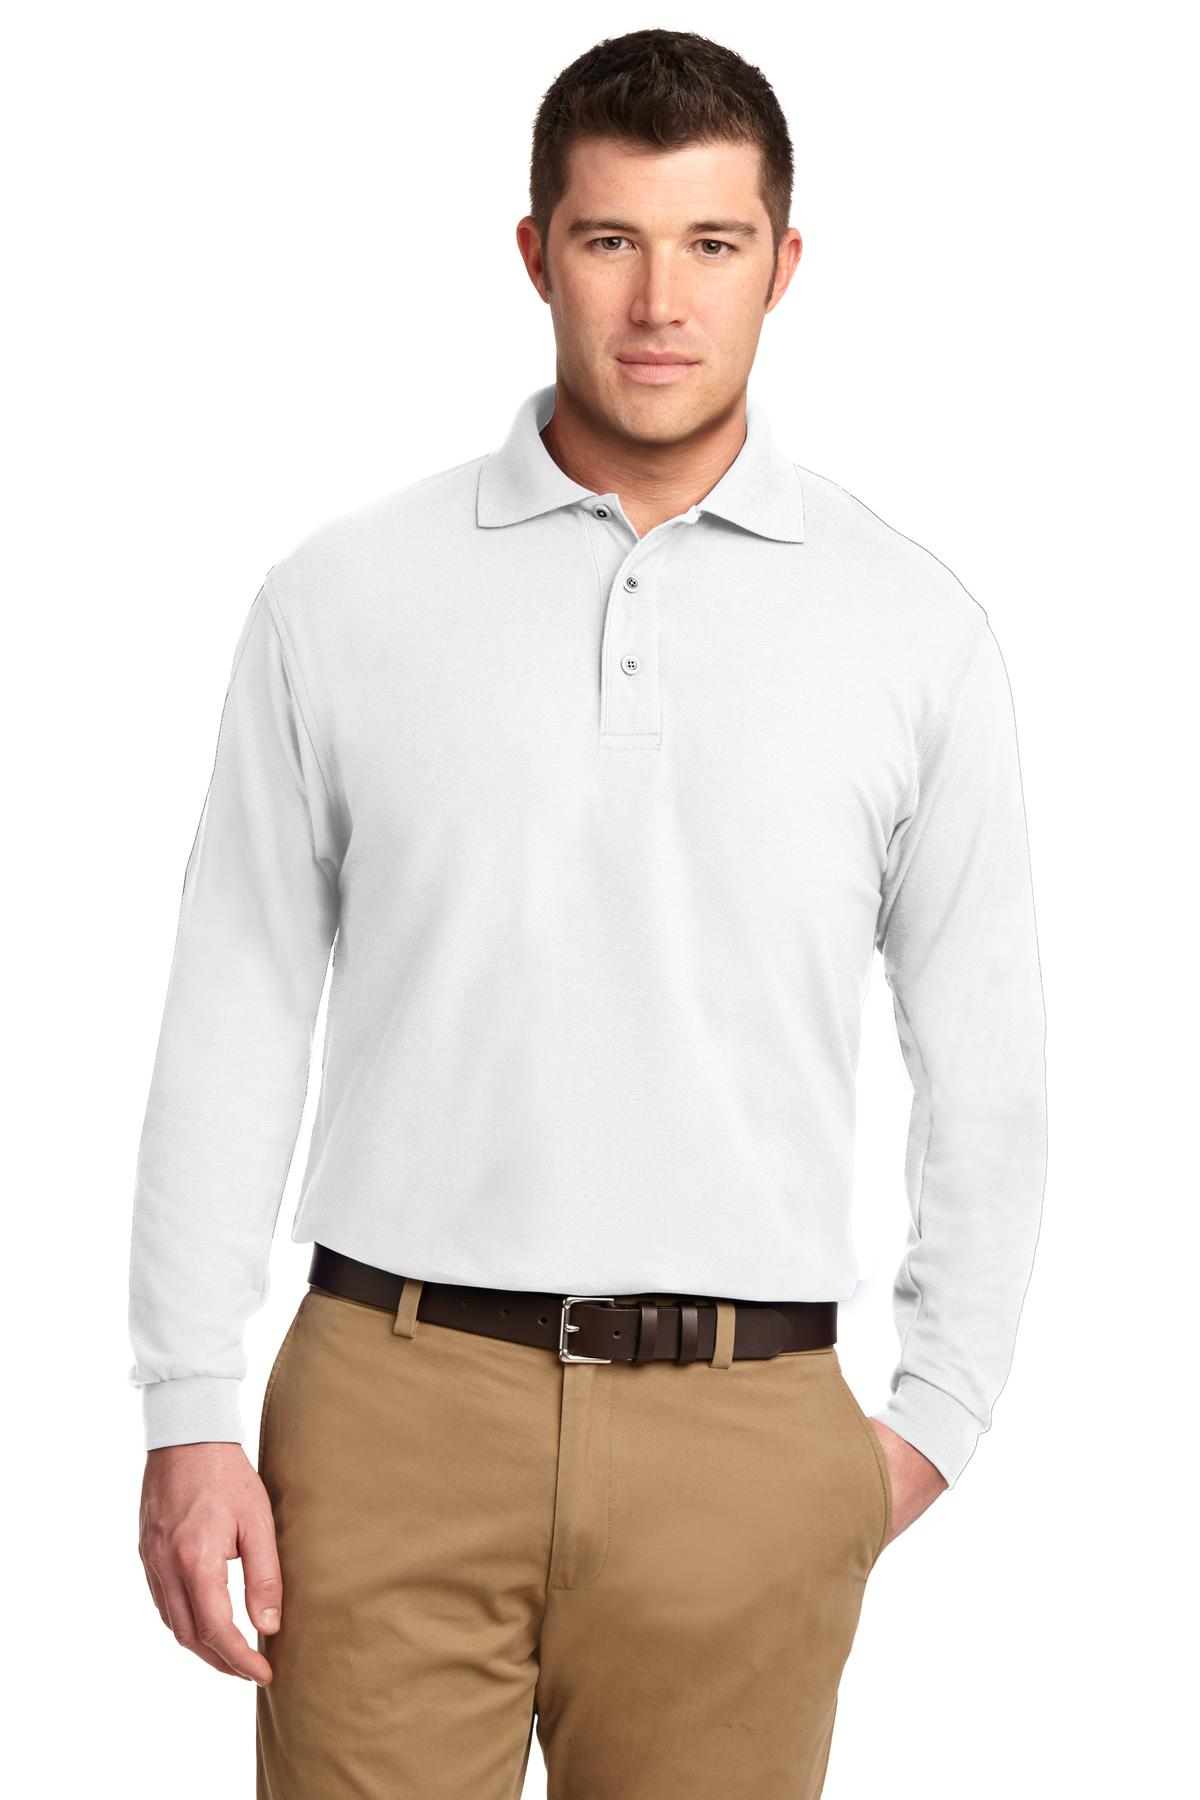 Port Authority ®  Silk Touch™ Long Sleeve Polo.  K500LS - White